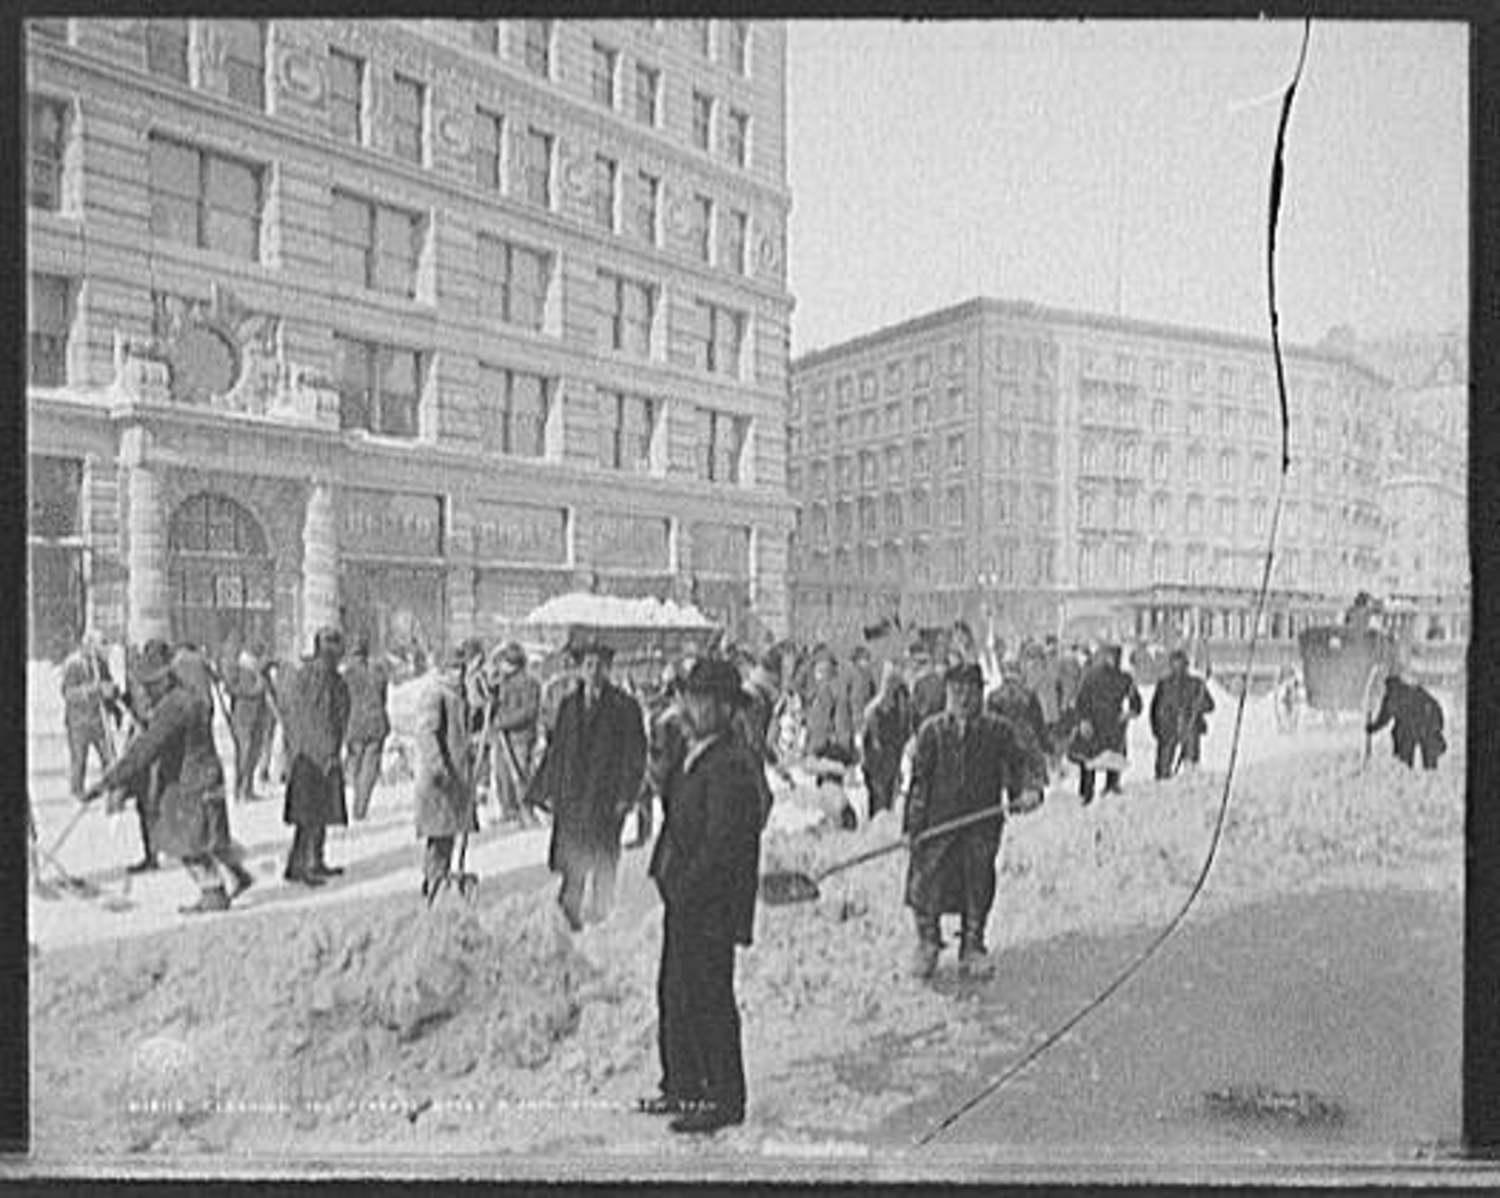 Cleaning the streets after a snow storm, New York. Broadway and 23rd St, 1905